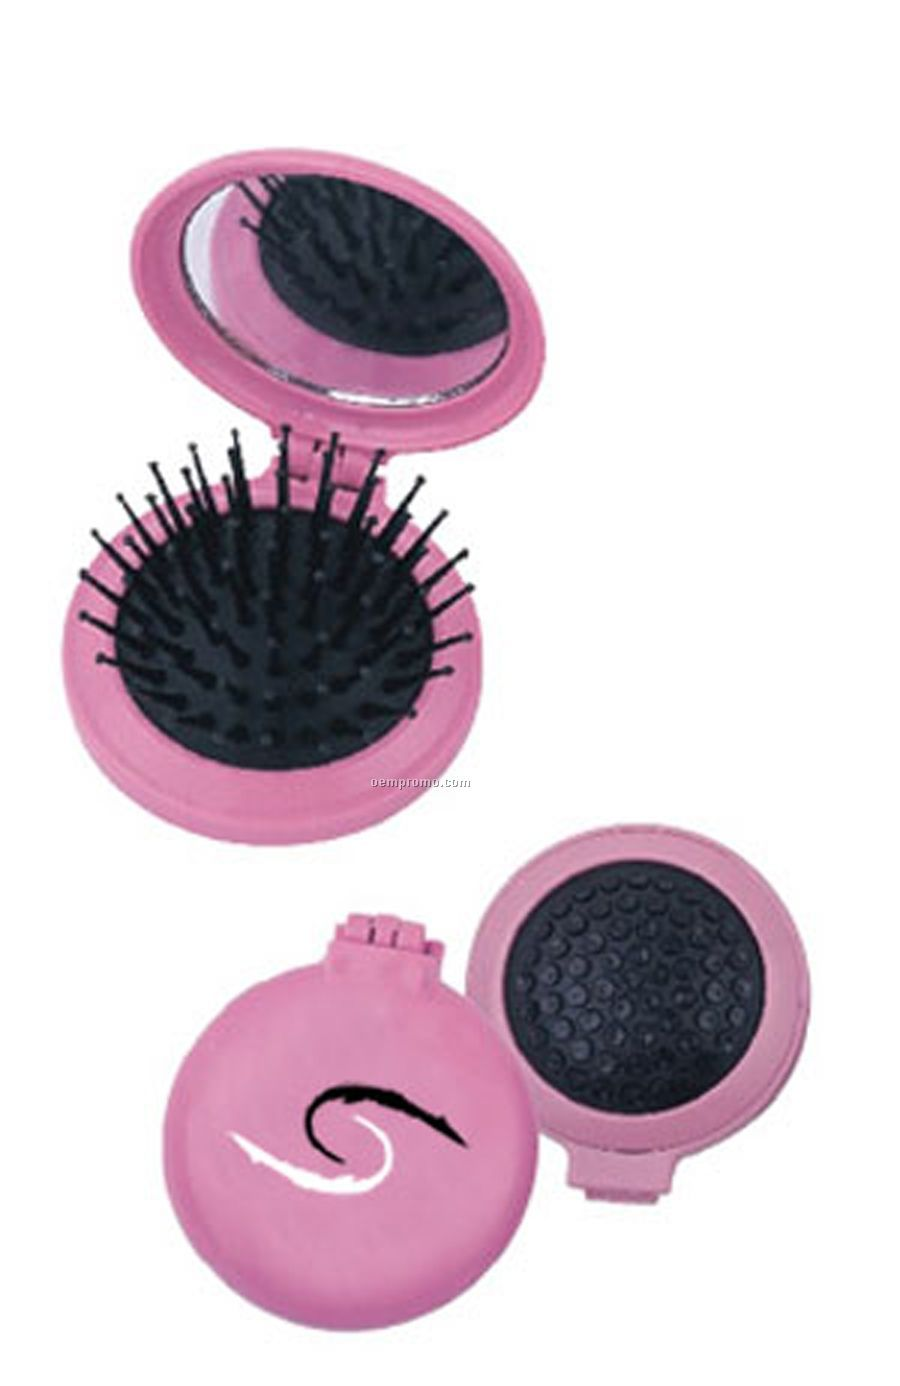 These are great because its a brush and mirror in one. If your hairs on knotty then get the brush use the mirror to look at it after or use the mirror for makeup.